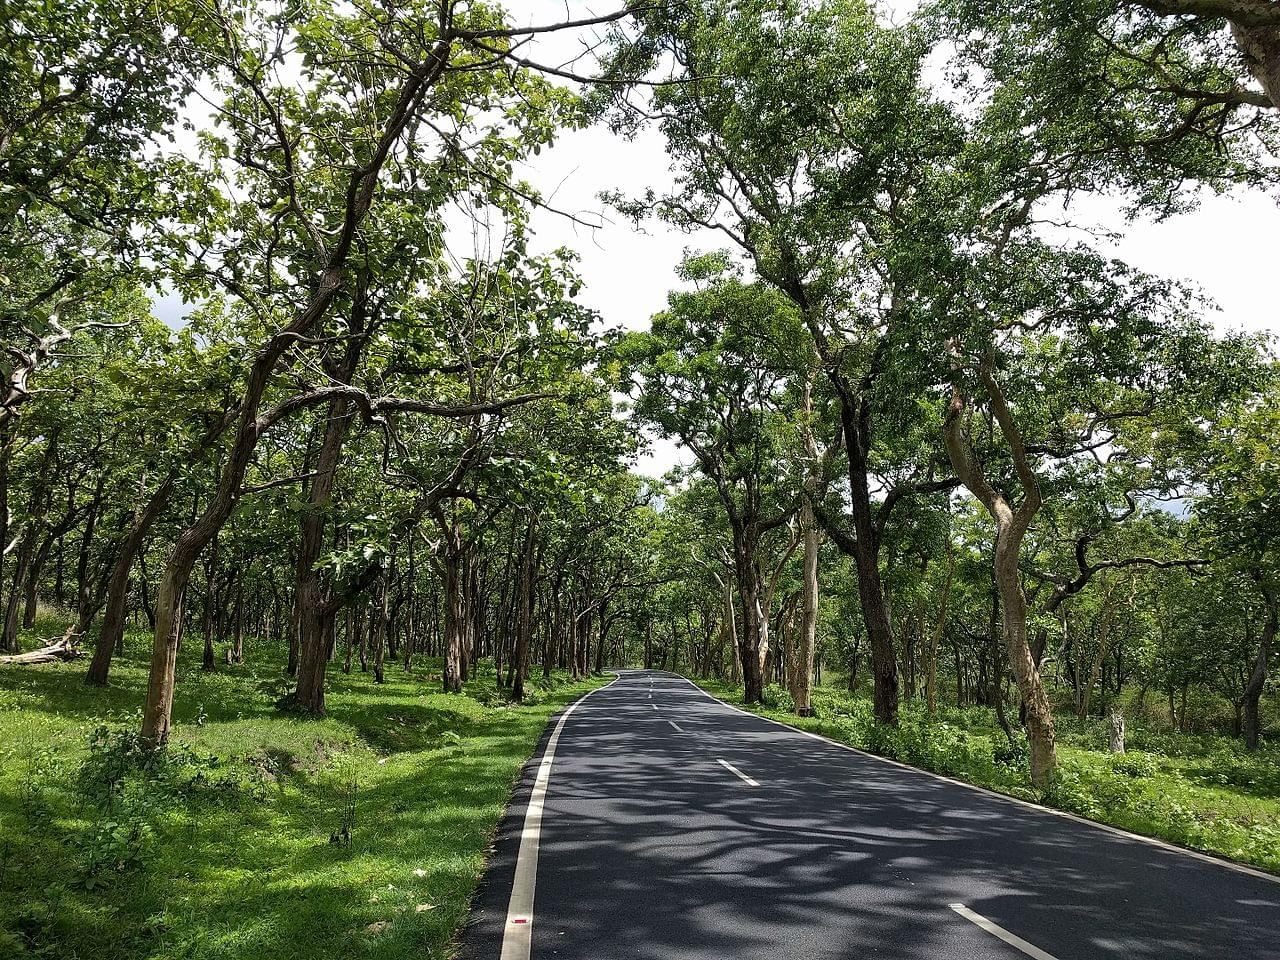 4-Night-5-Days-Mysore-and-Bandipur-National-Park-Tour-Package-JustWravel-1597395349-1.jpg